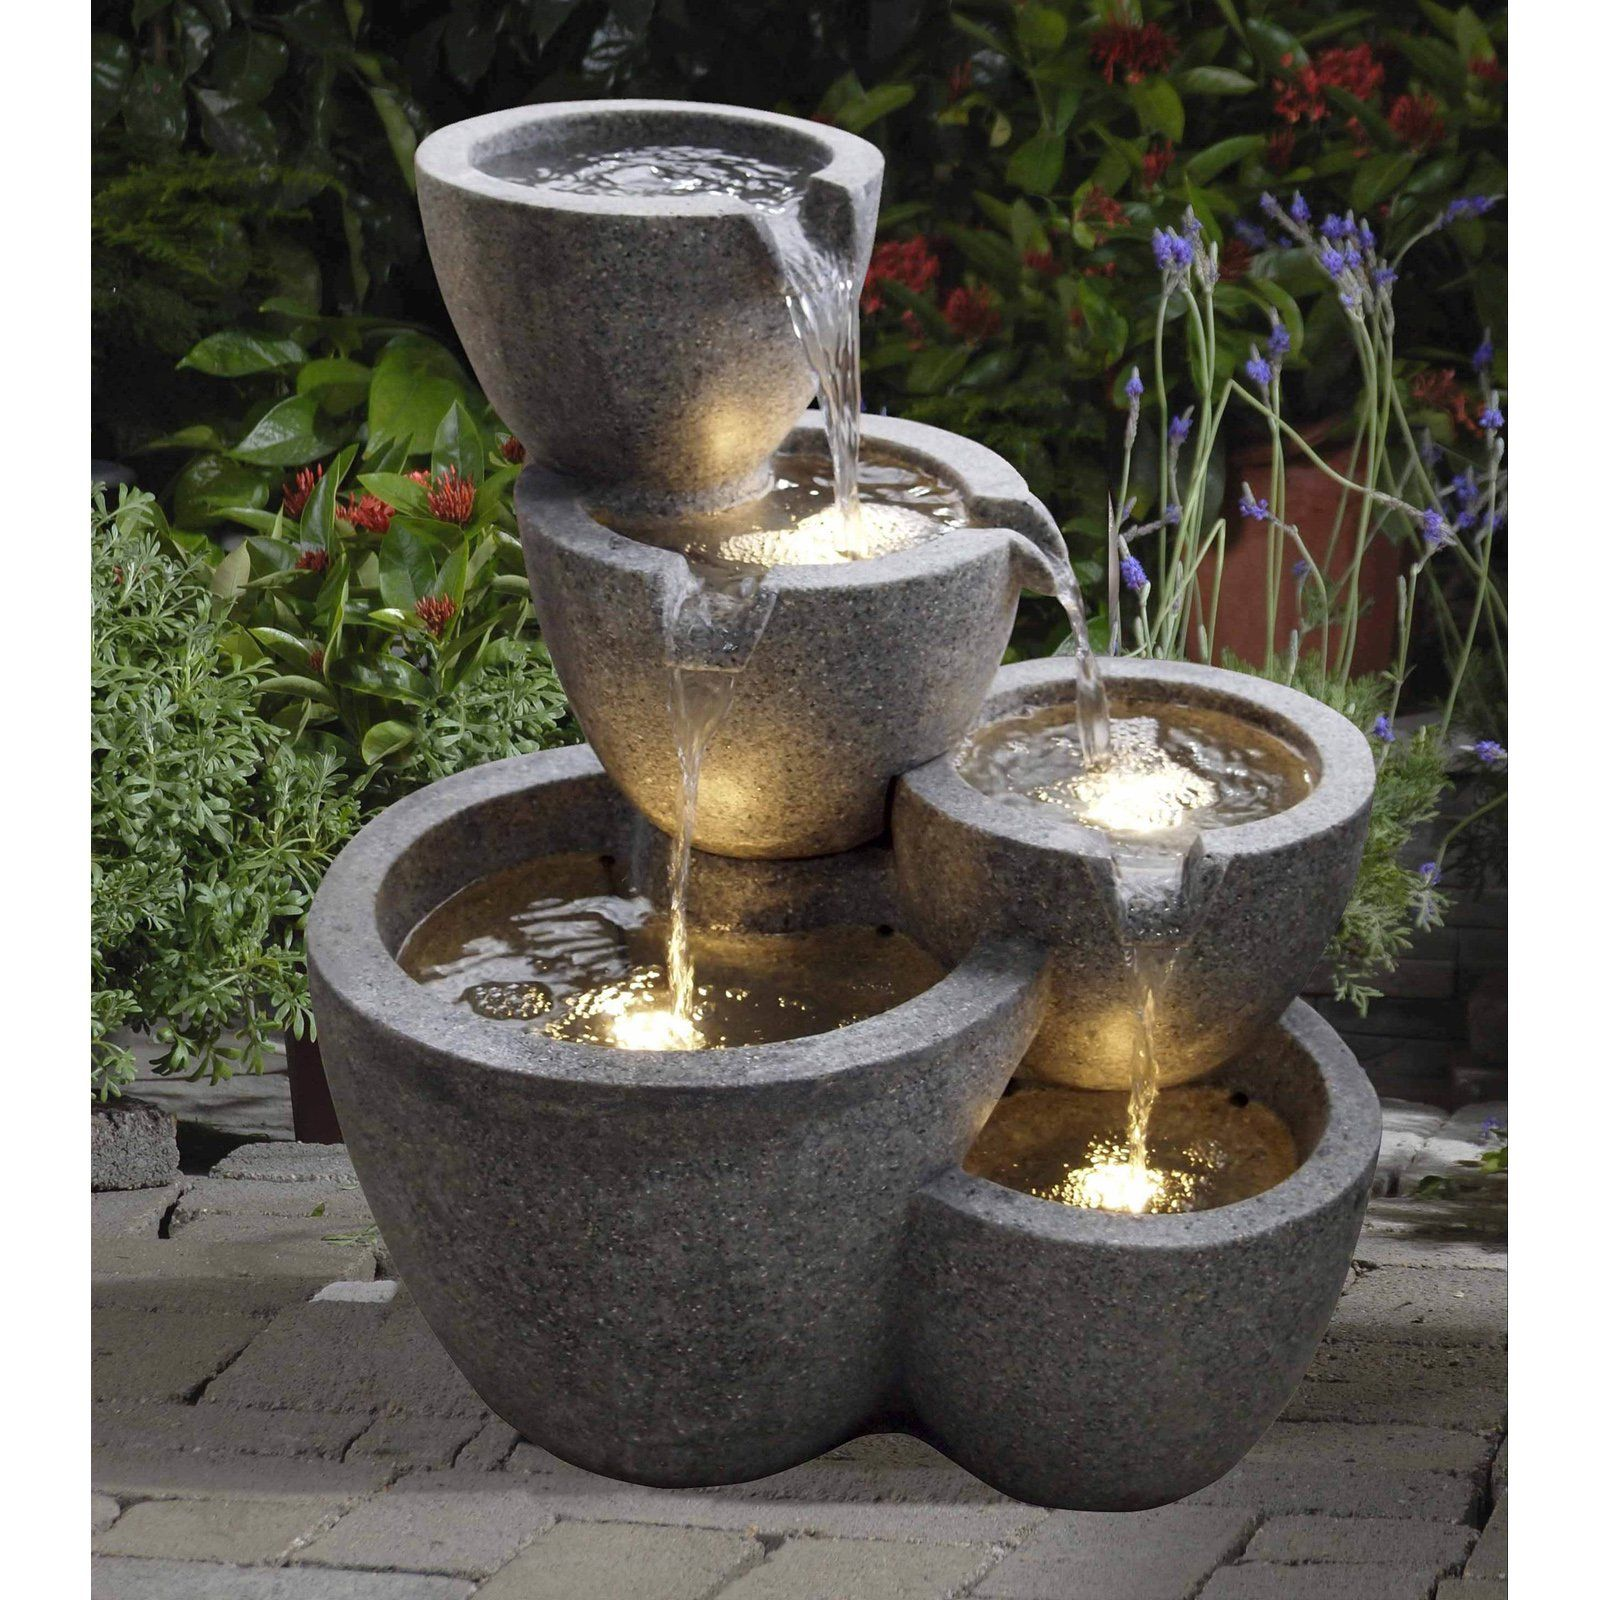 Jeco Multi Pots Indoor Outdoor Fountain with 4 LED Lights